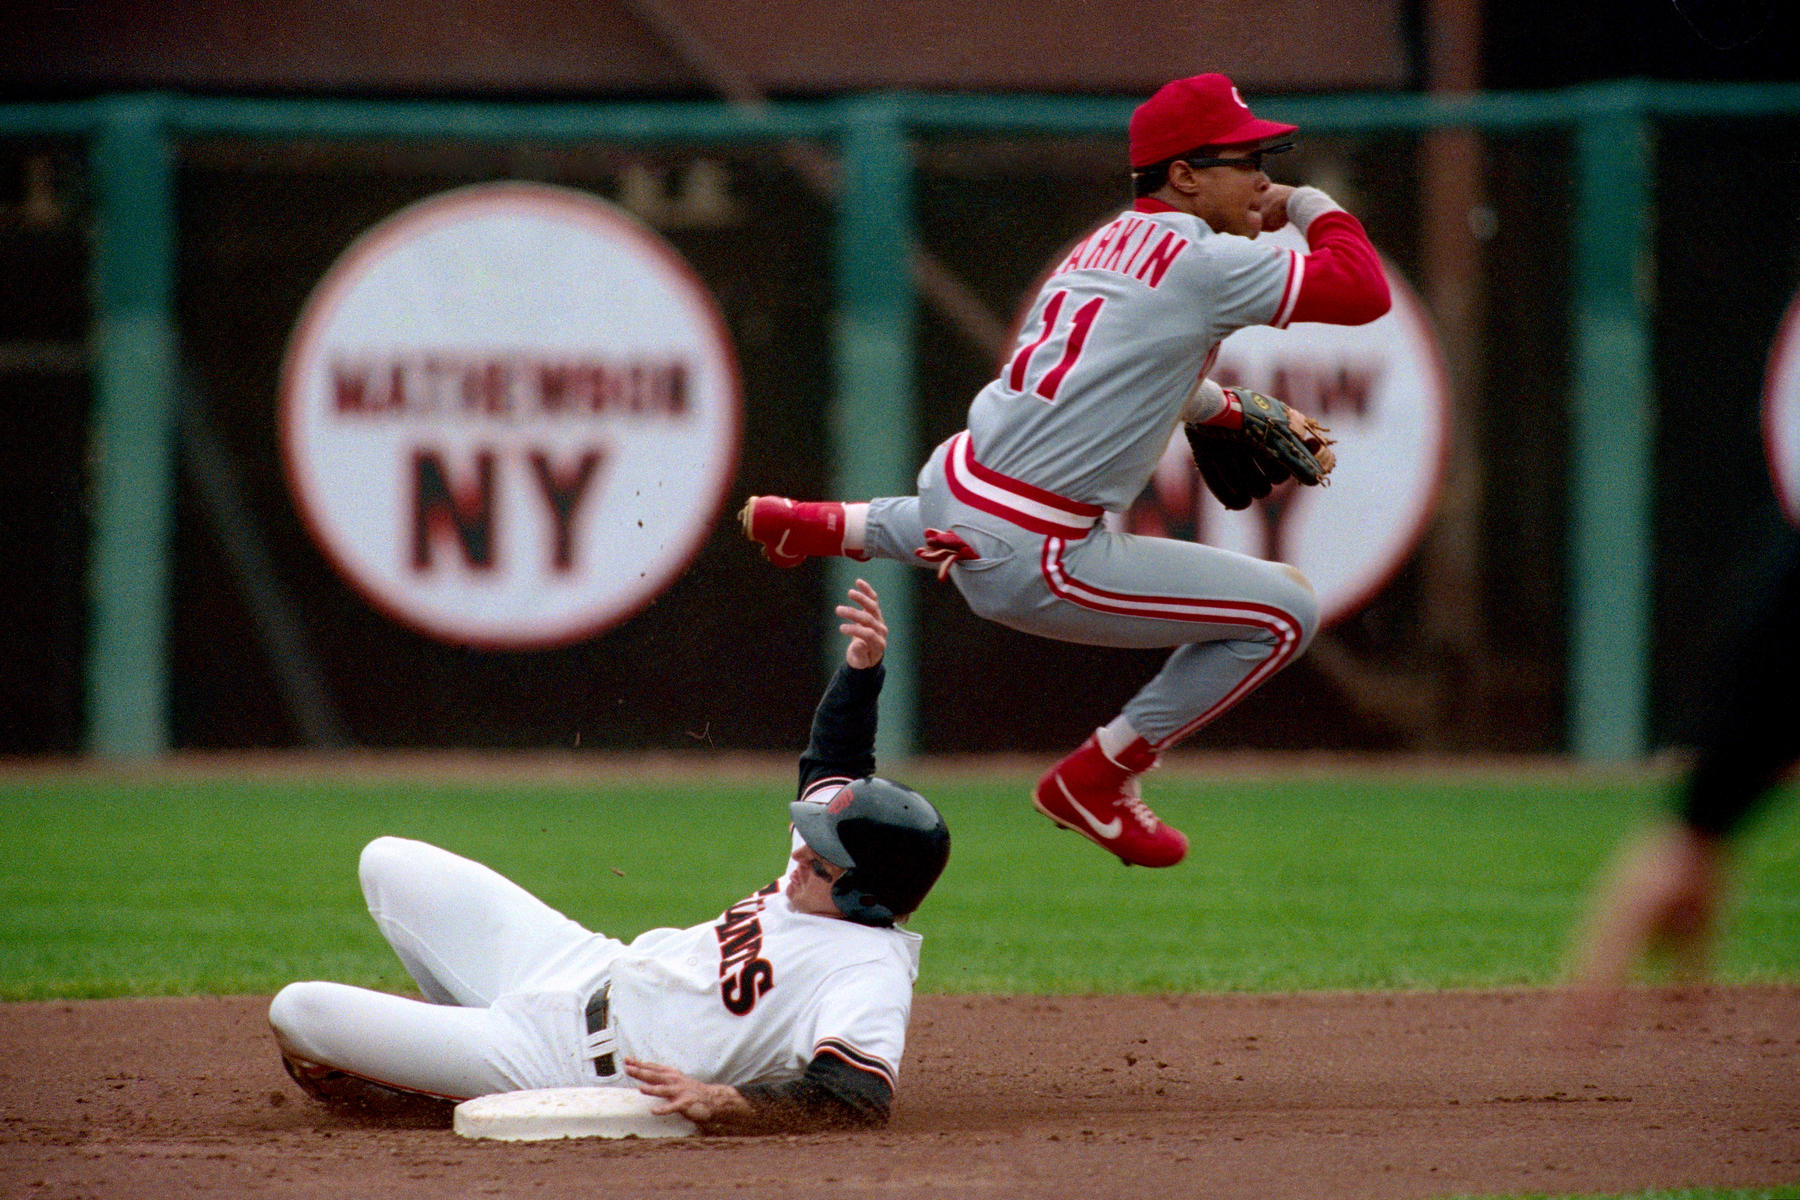 Cincinnati Reds shortstop Barry Larkin turns a double play at second base in a game against the San Francisco Giants in 1990. Larkin earned three consecutive Gold Glove Awards with the Reds from 1994-96. (Brad Mangin / National Baseball Hall of Fame Library)